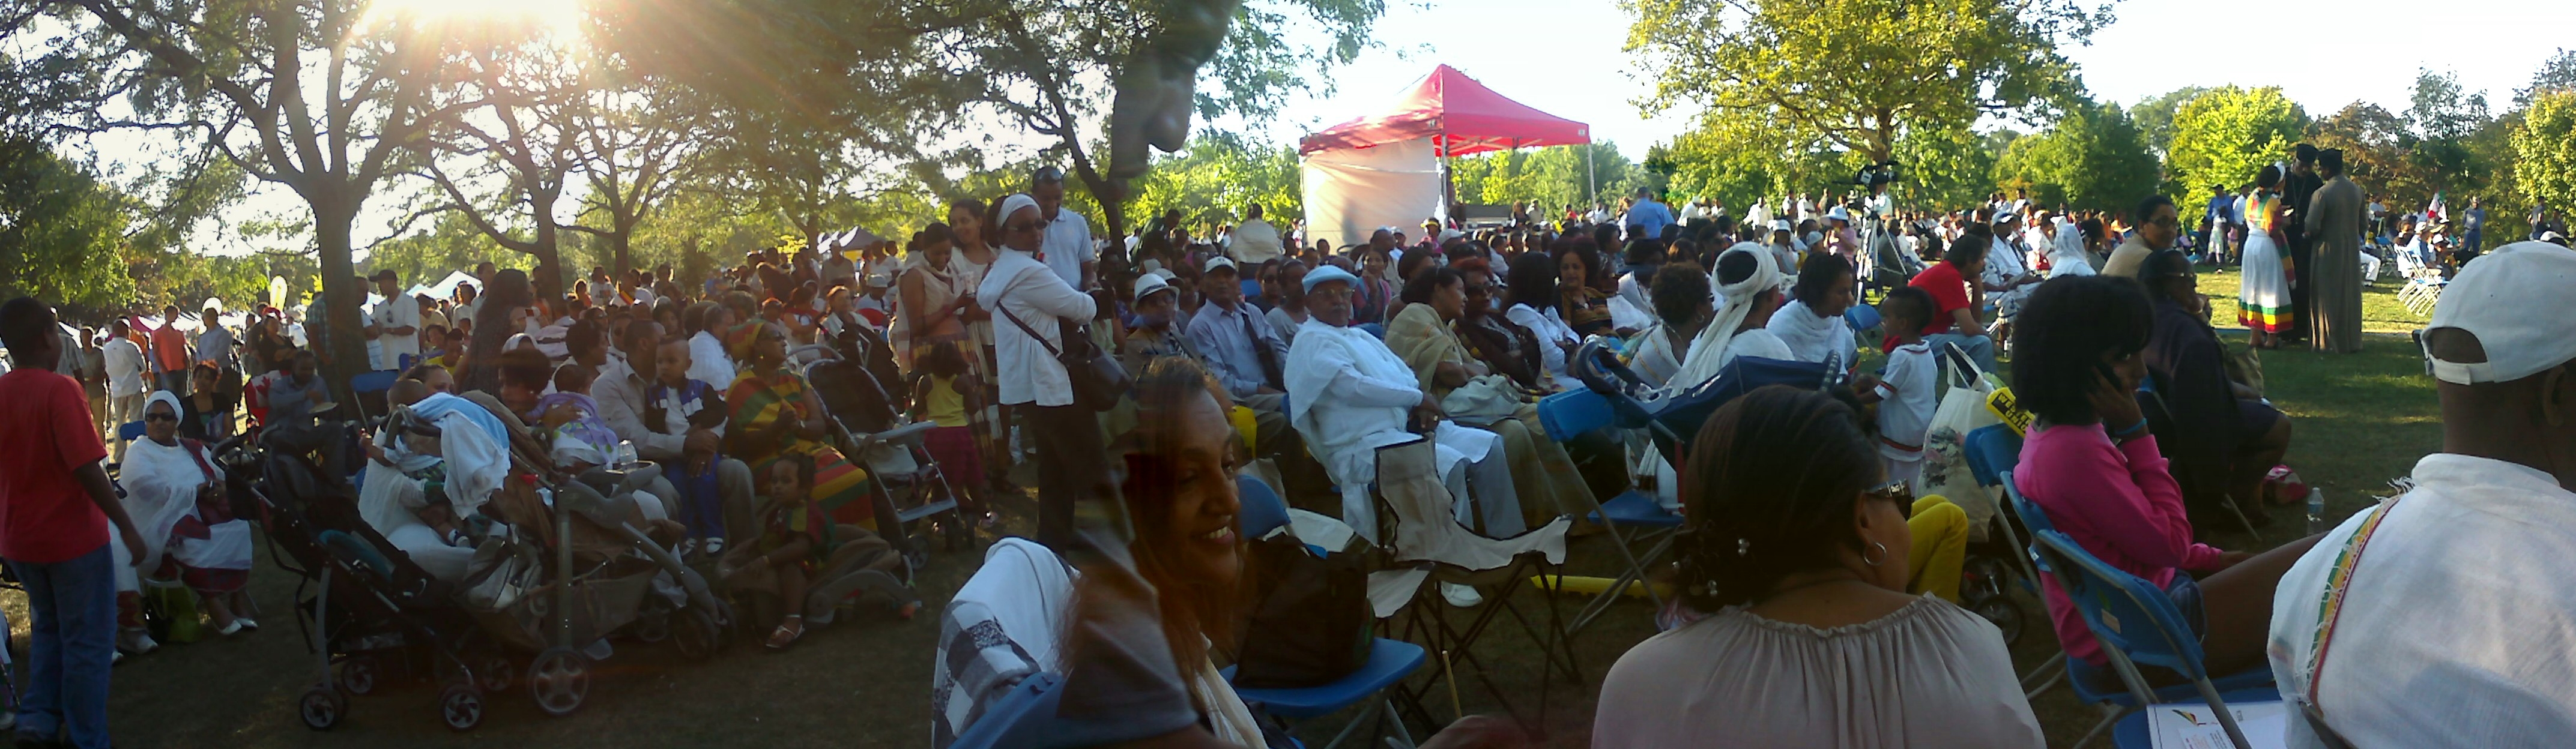 2011 Ethiopian New Year's crowd at Christie Pits Park